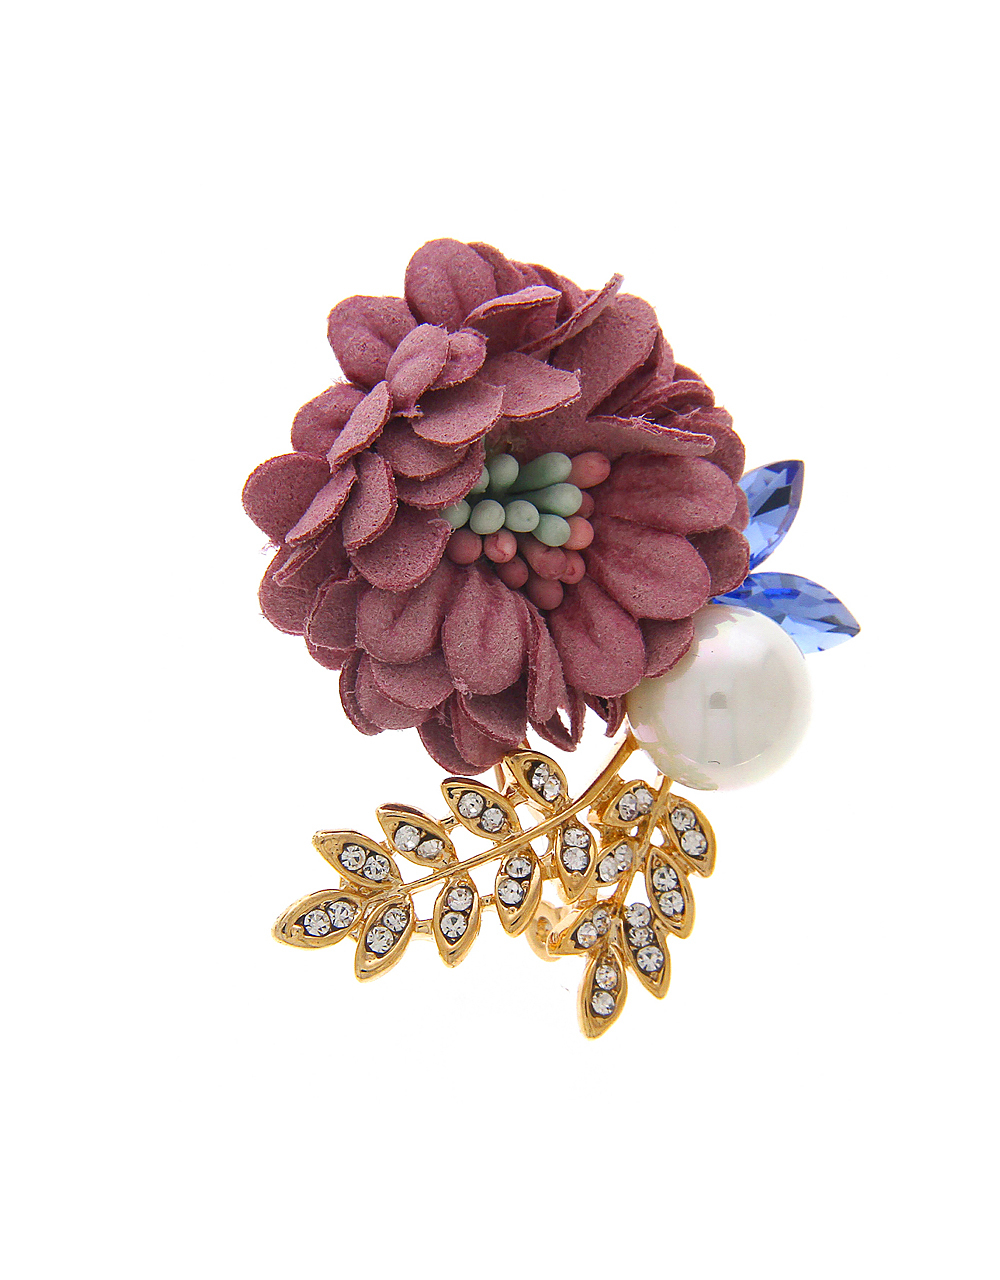 Pink Blue Combination Brooch Pin Styled with Sparkling Stones for Men